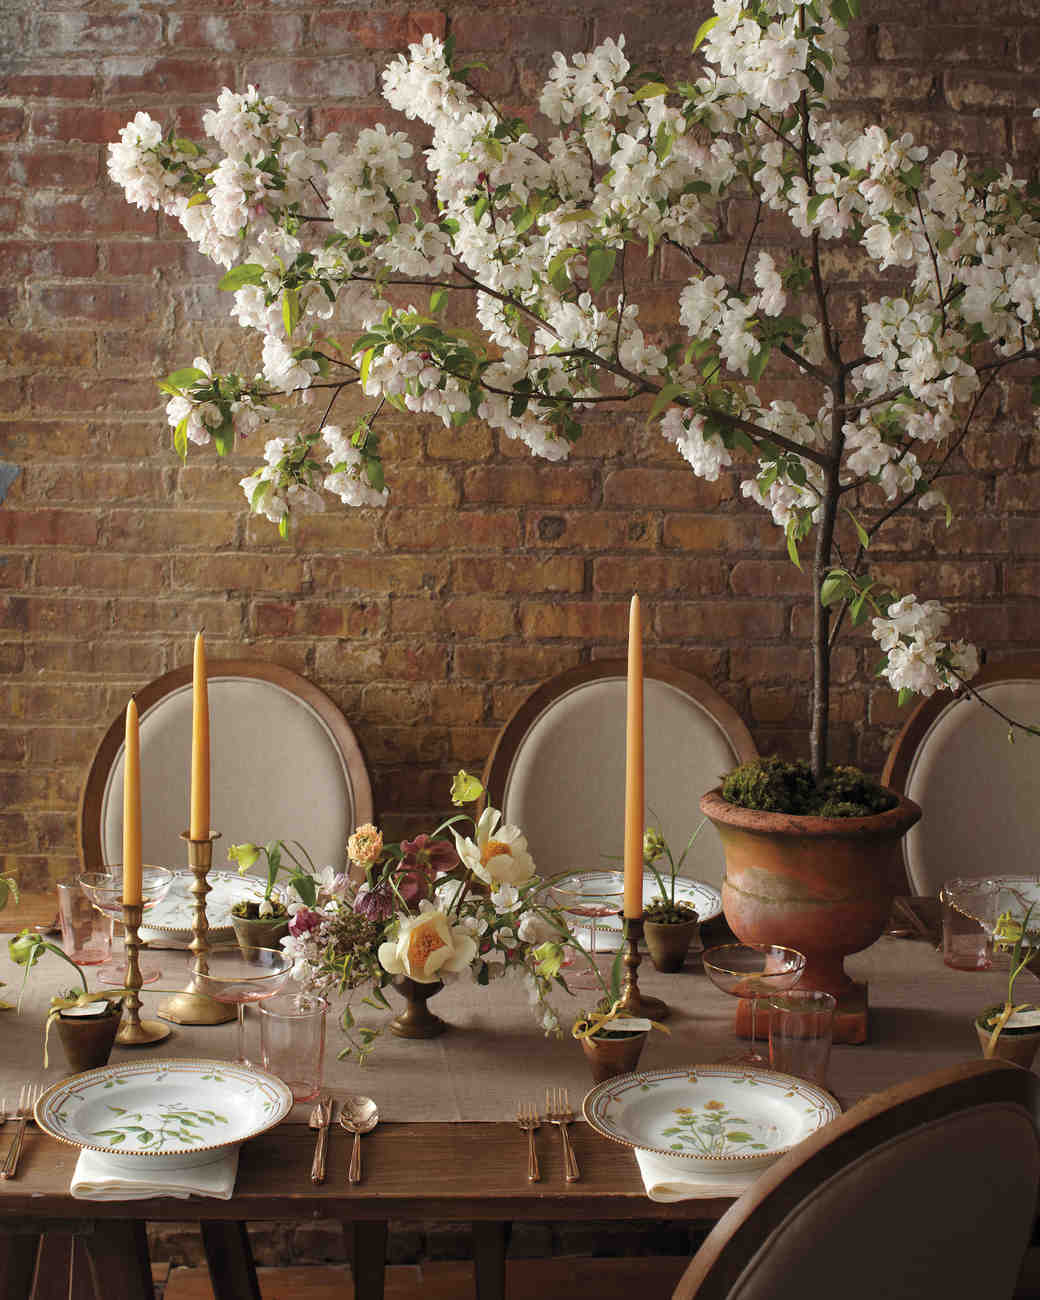 Flowers For Wedding Table Centerpieces: Spring Wedding Flower Ideas From The Industry's Best